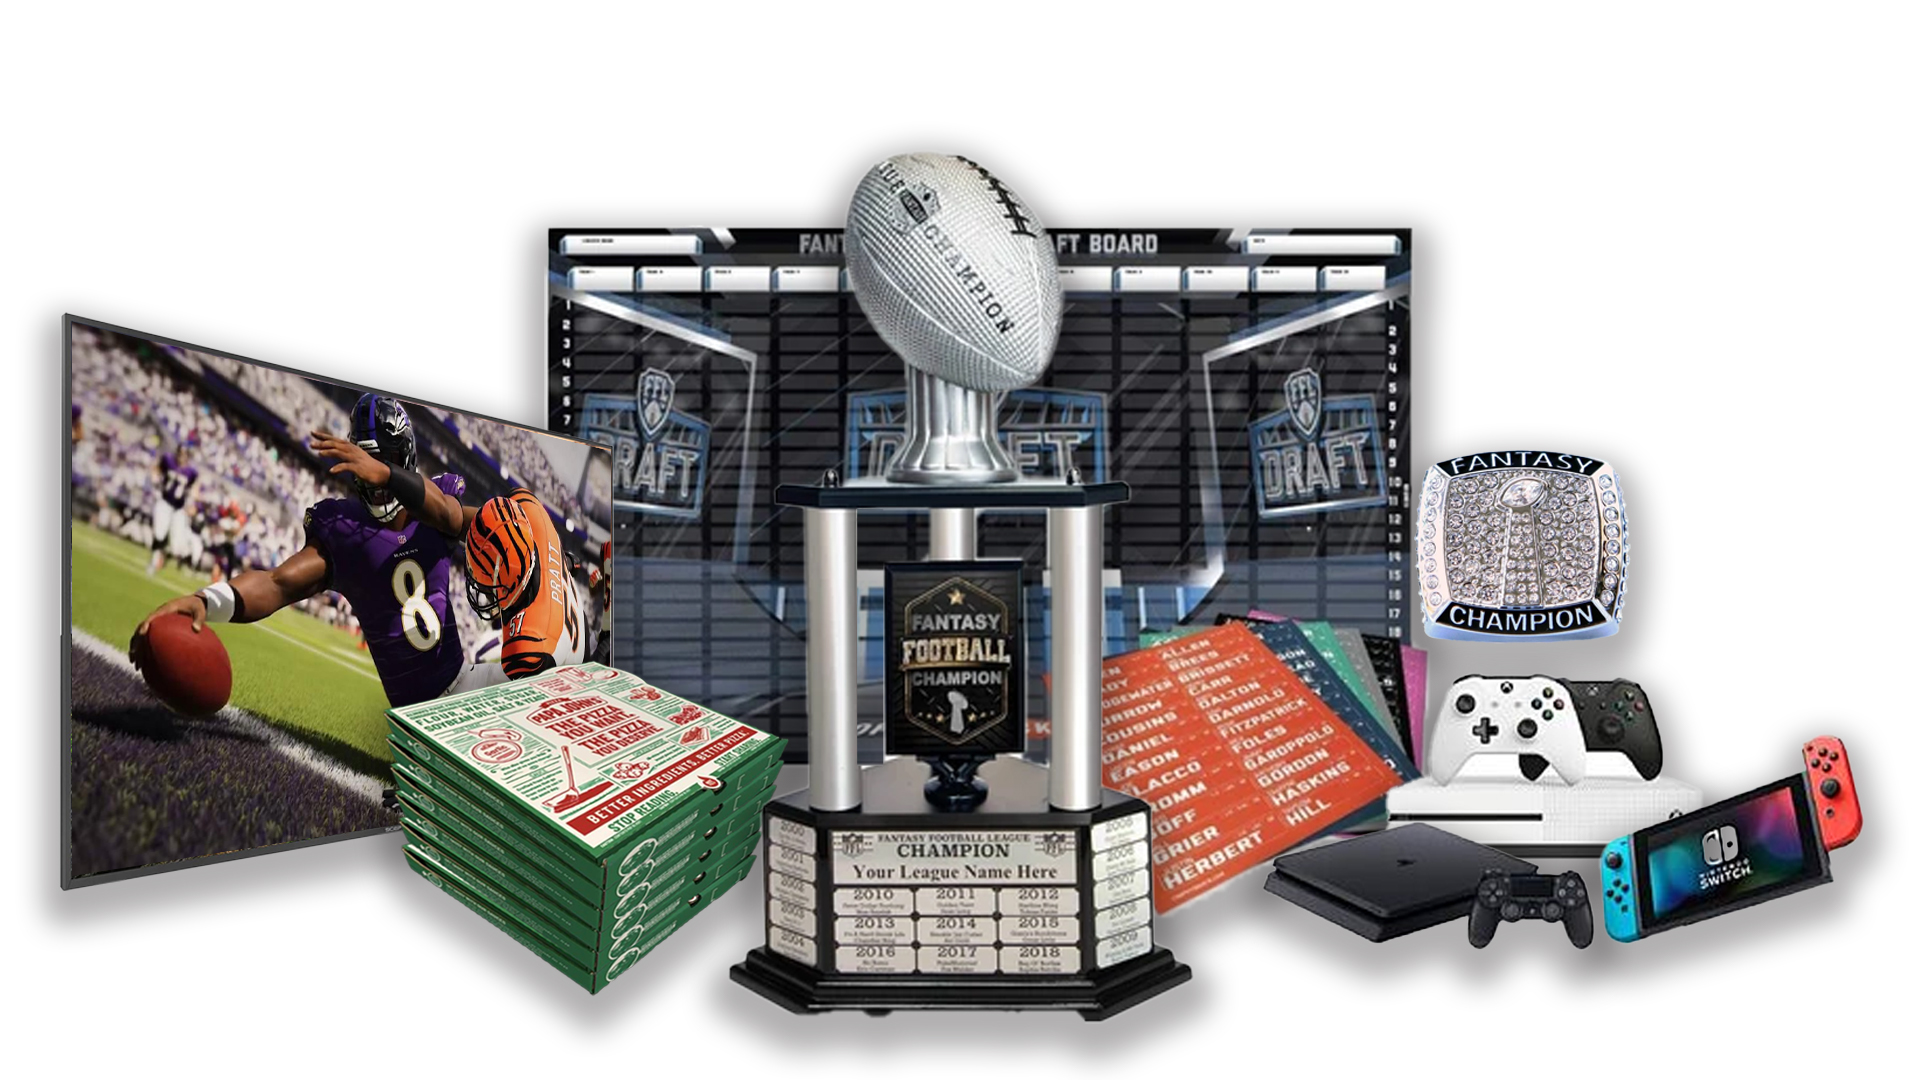 - FFDraft Trophy 3 White Pizza - Fantasy Football Draft Parties at 1Life2Play